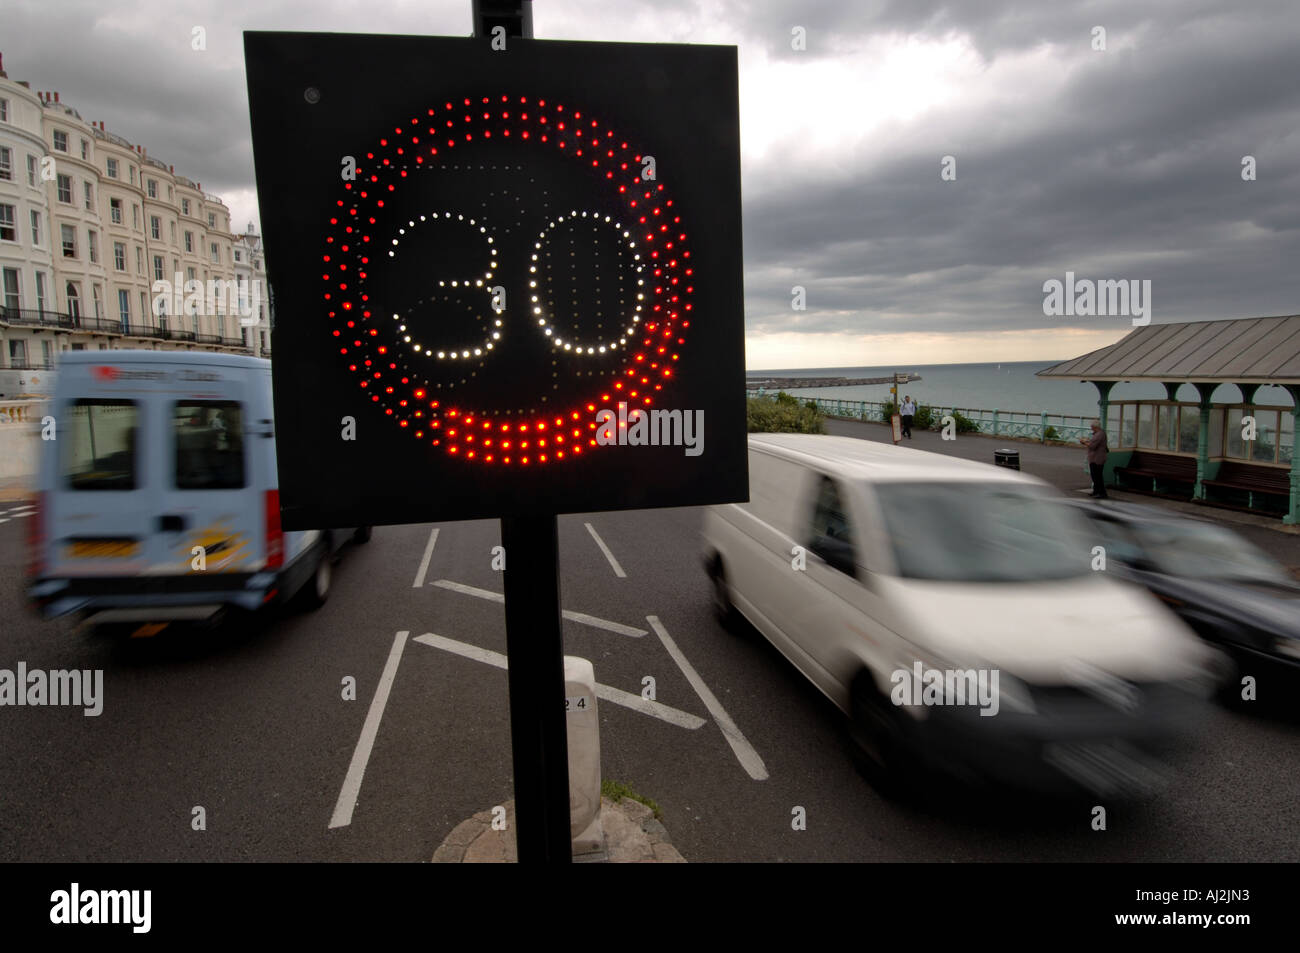 Traffic on Brighton seafront is warned of the 30 mph miles per hour speed limit by an illuminated sign - Stock Image